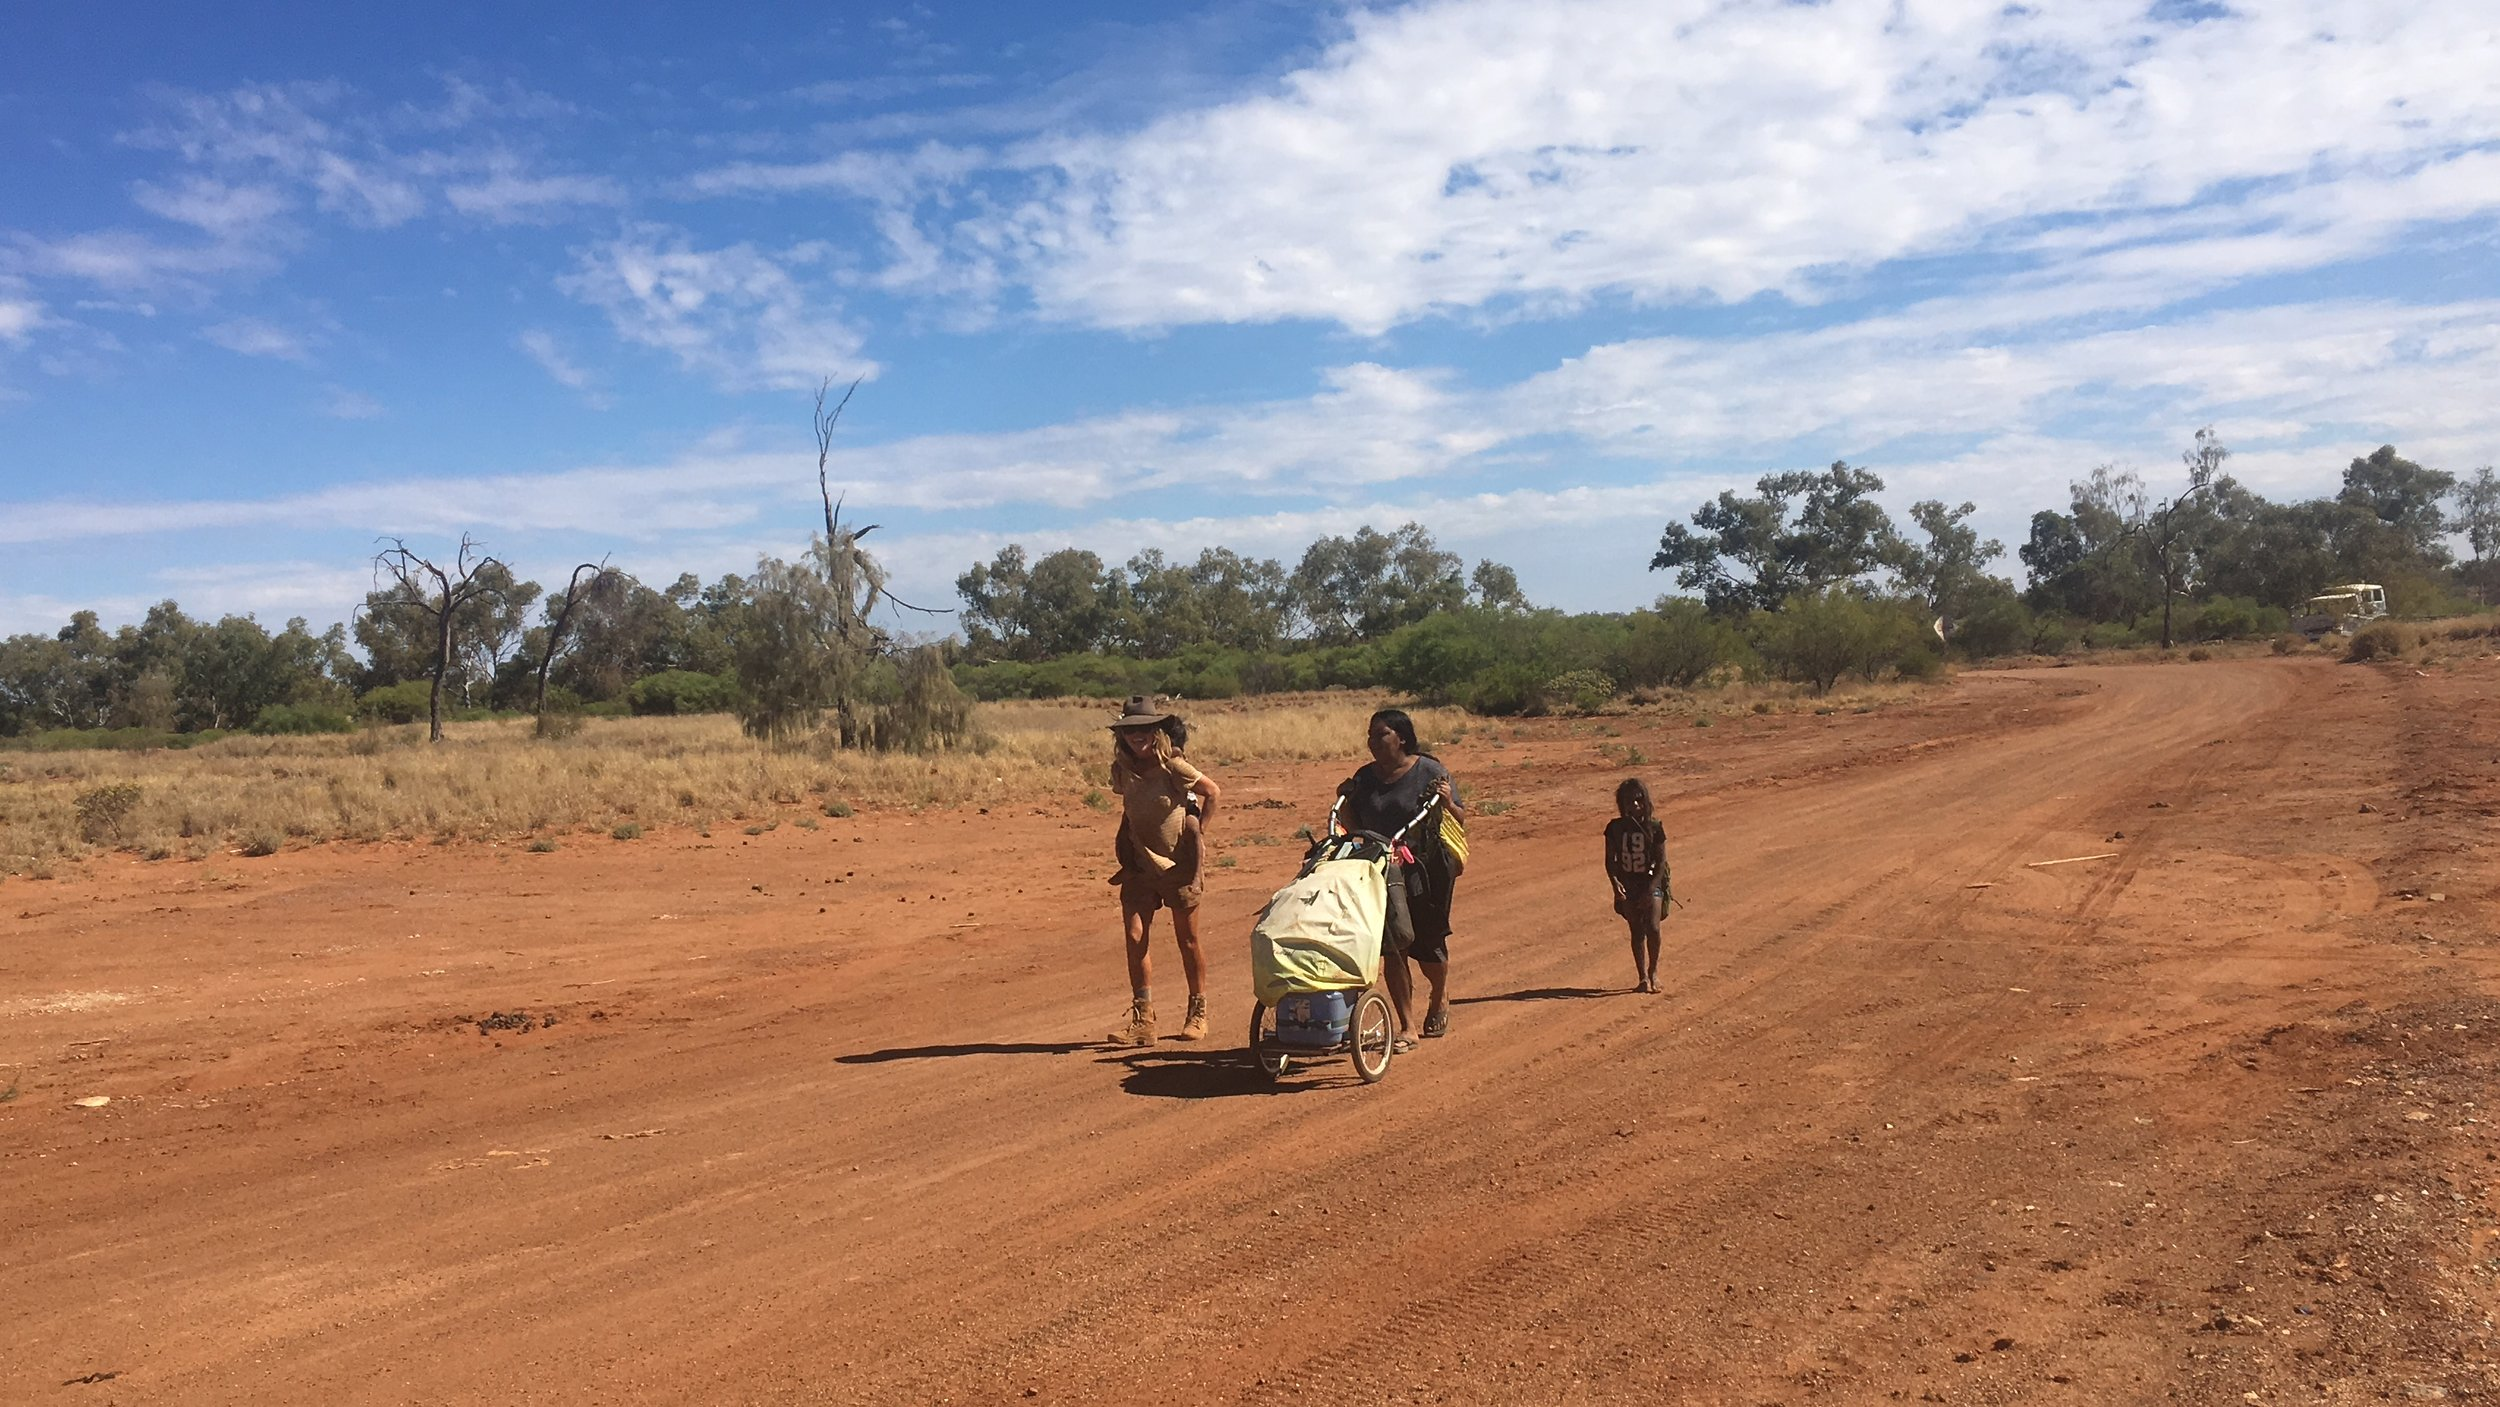 Walking into Jigalong with Maria, Molly's daughter